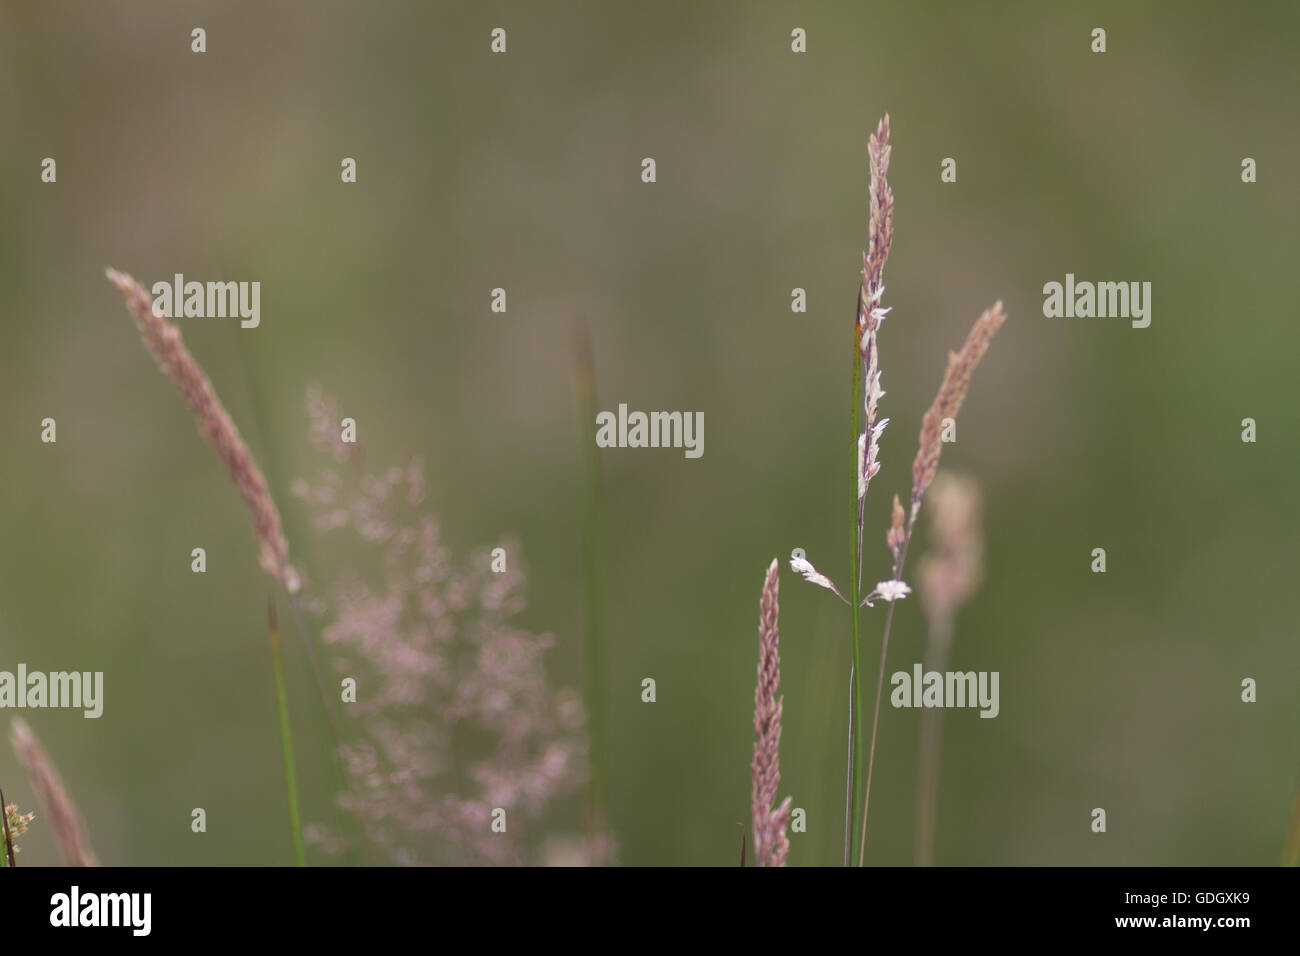 Detail of a grass meadow with tall grass and an out of focus background of muted tones - Stock Image